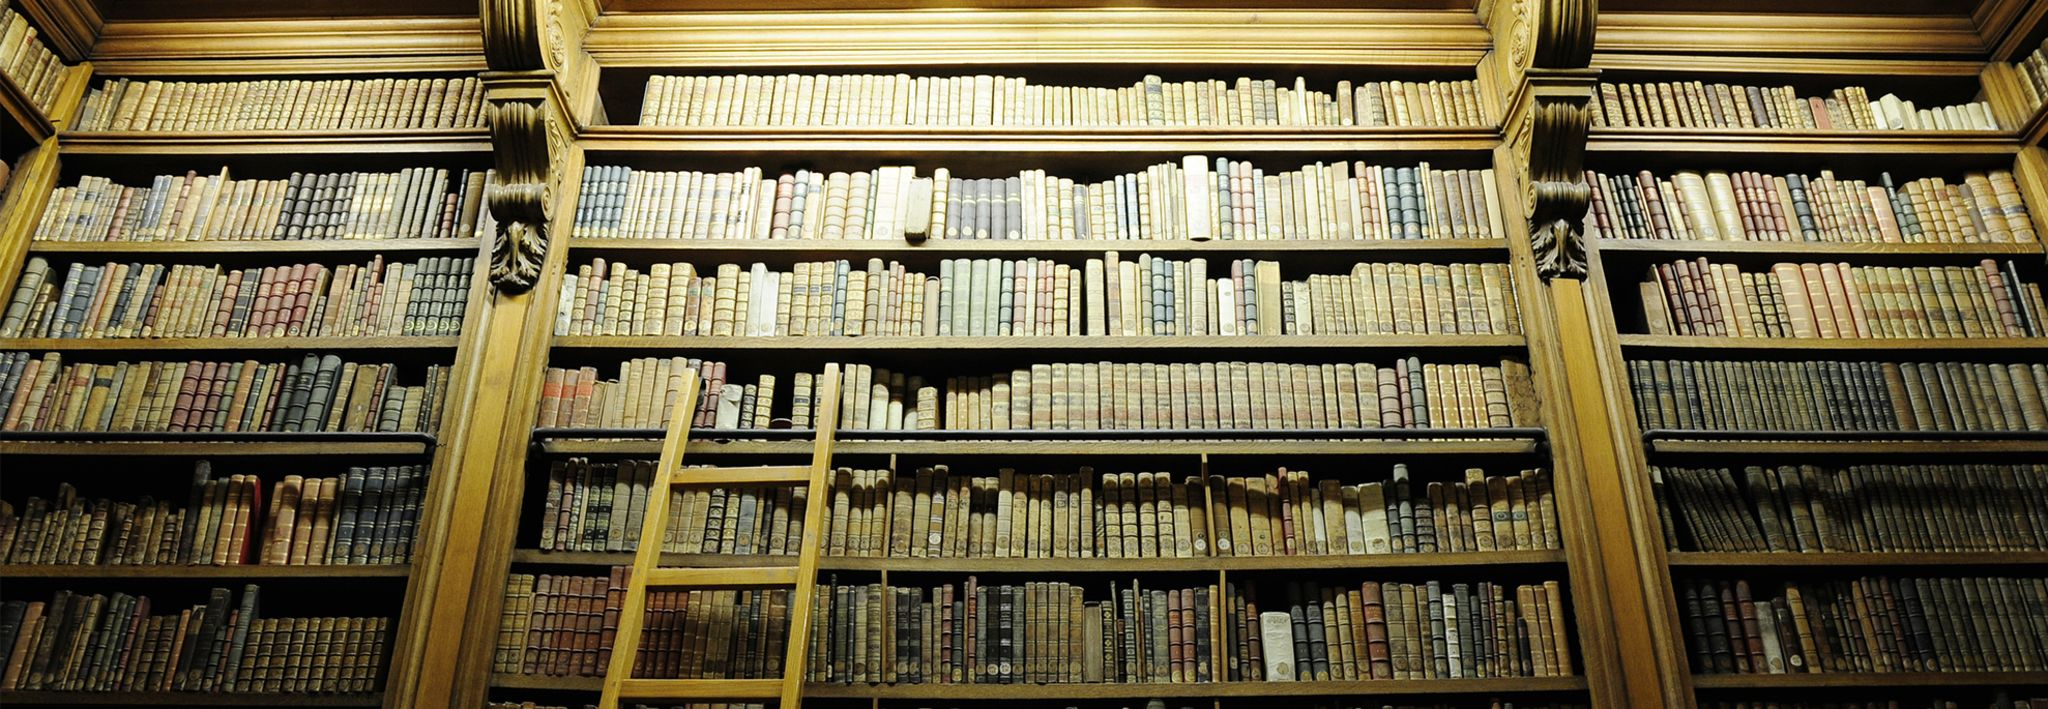 A collection of criminal justice books are displayed in a library.